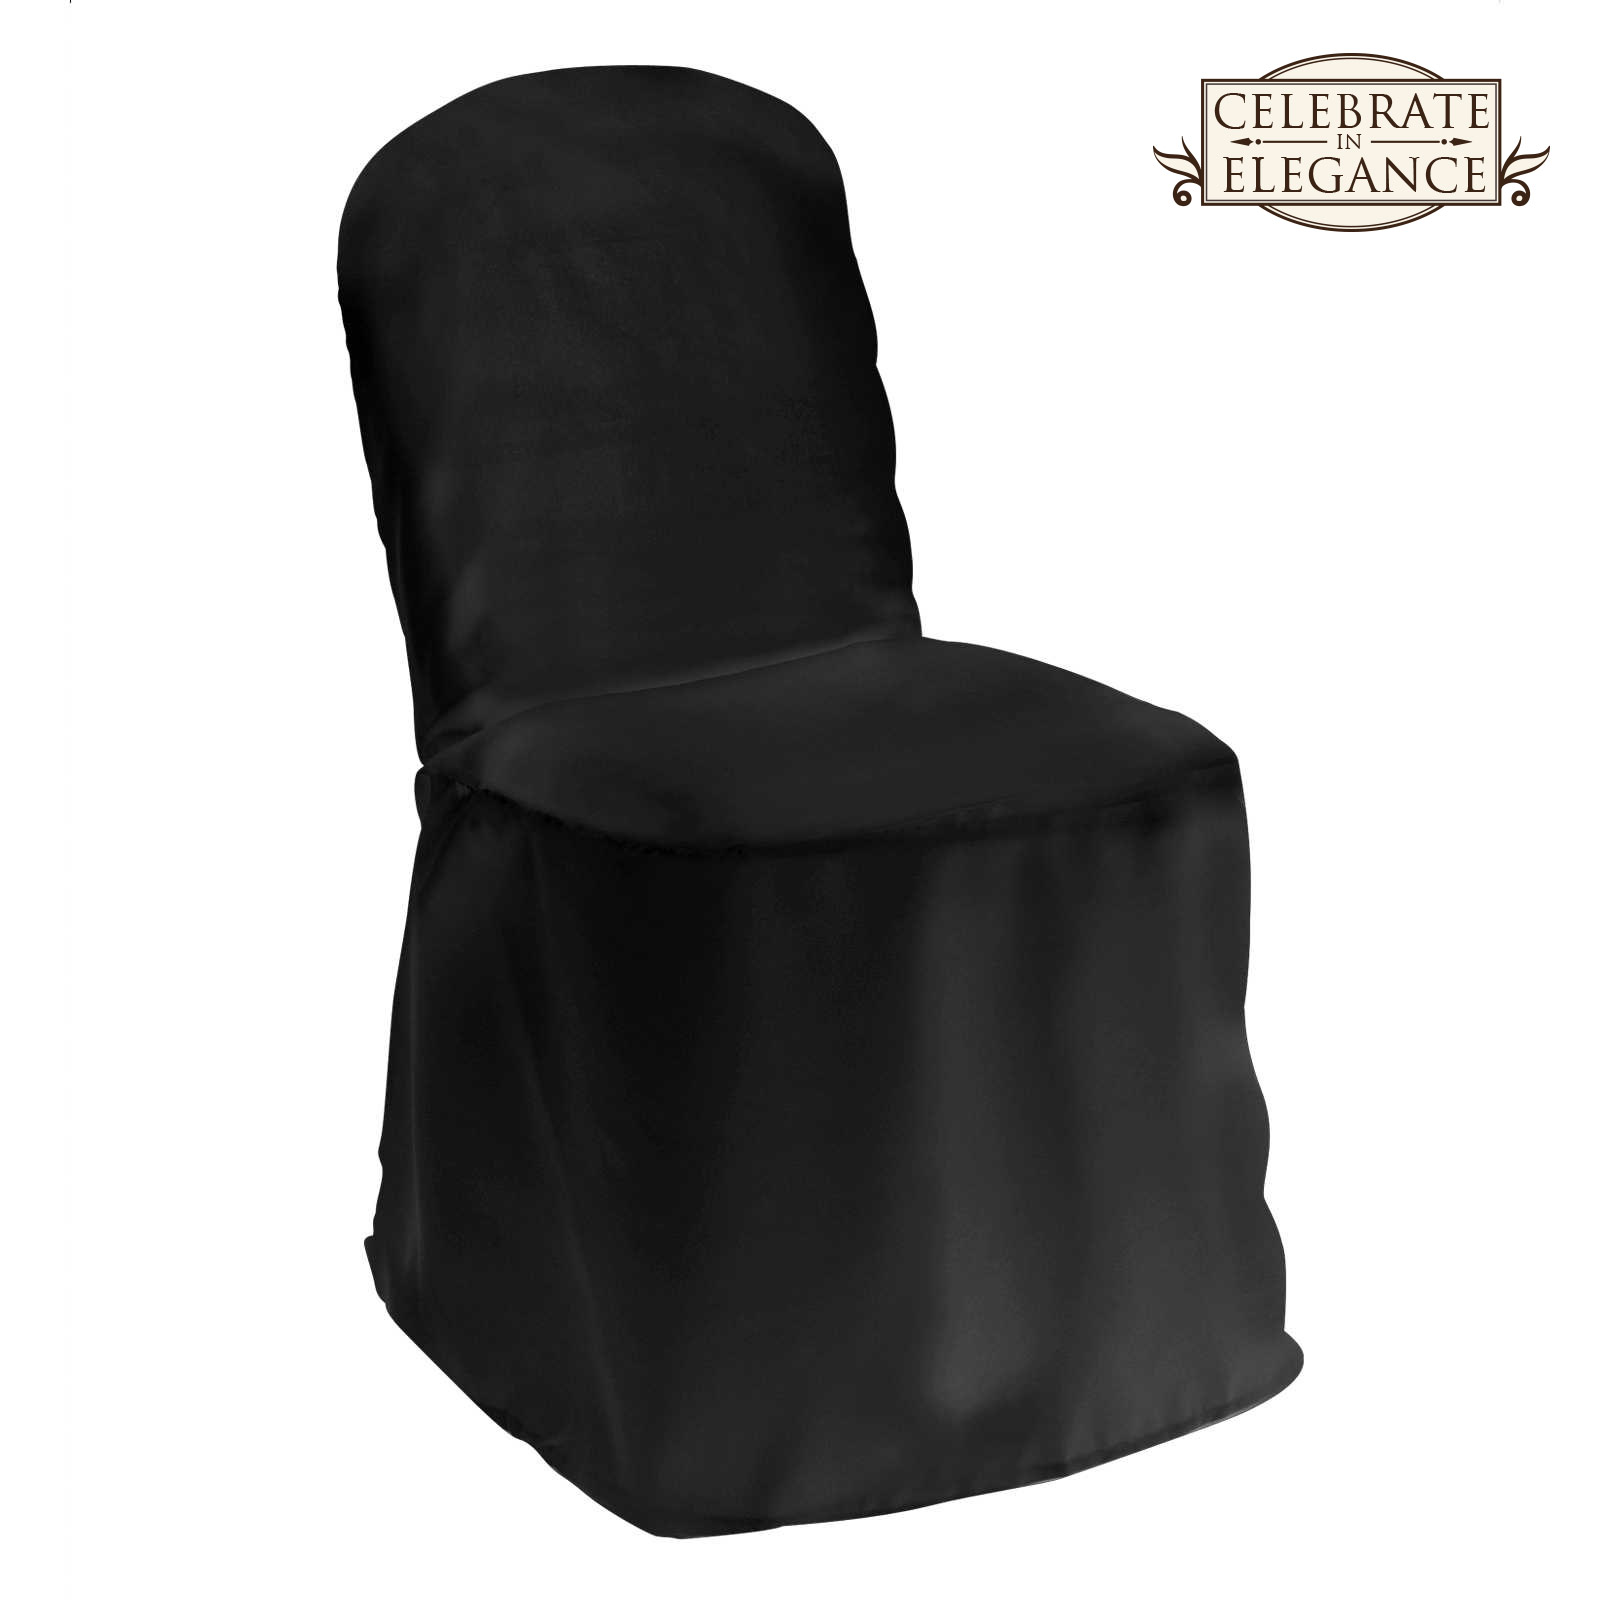 polyester banquet chair covers all weather chairs 10 wedding party décor ebay